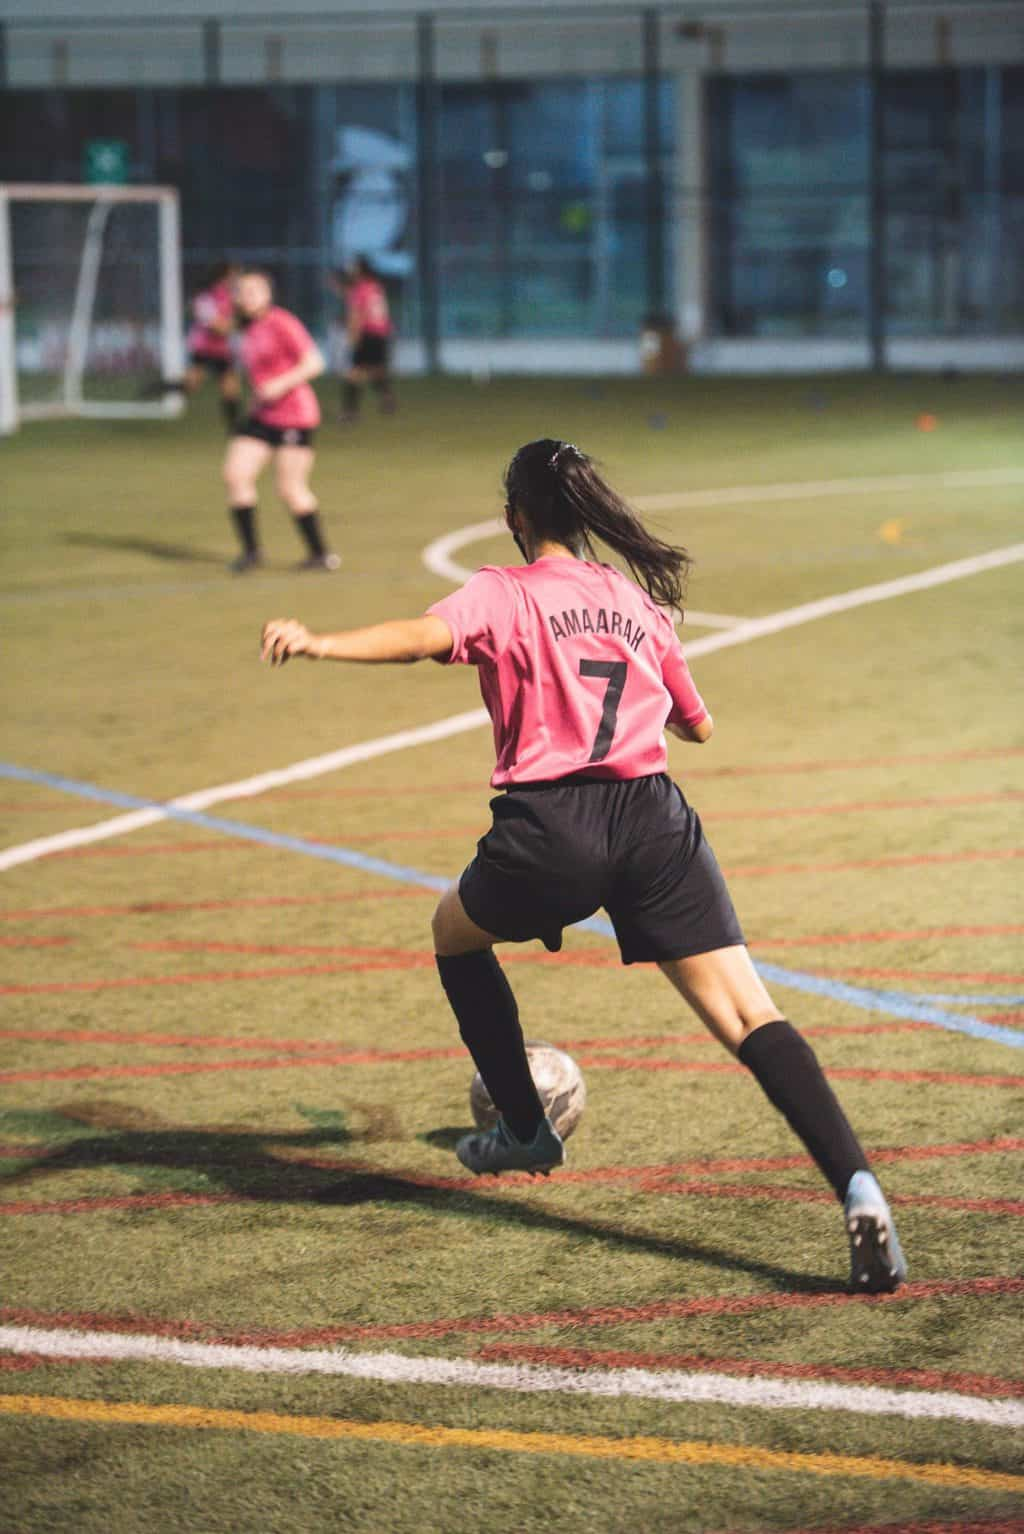 Woman in pink jersey kicking a soccer ball